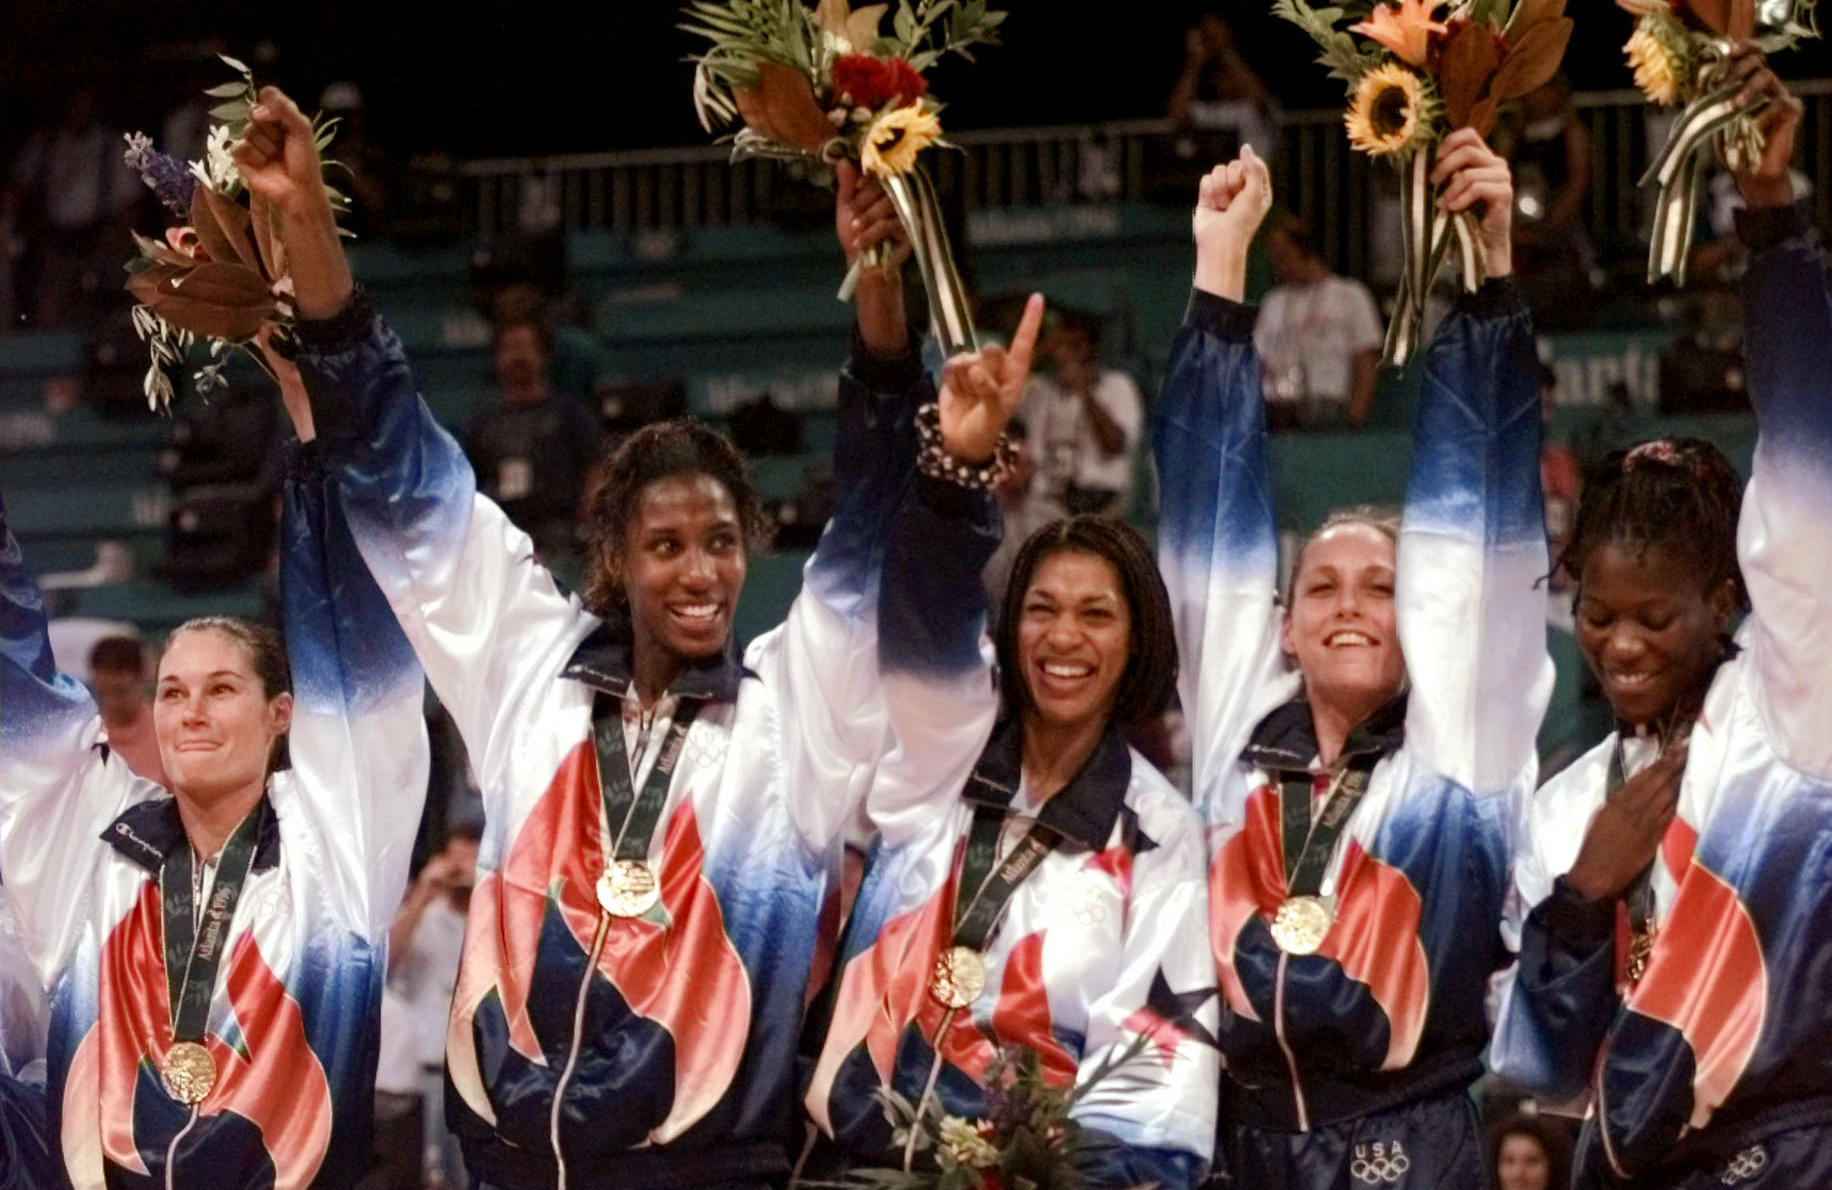 United States' women's basketball team members wear their gold medals during medal ceremonies in basketball at the Centennial Summer Olympic Games in Atlanta Sunday, August 4, 1996. Team members from left are: Jennifer Azzi, Lisa Leslie, Carla McGhee, Katy Steding and Sheryl Swoopes. The United States defeated Brazil 111-87 for the gold medal in women's basketball. (AP Photo/Susan Ragan)